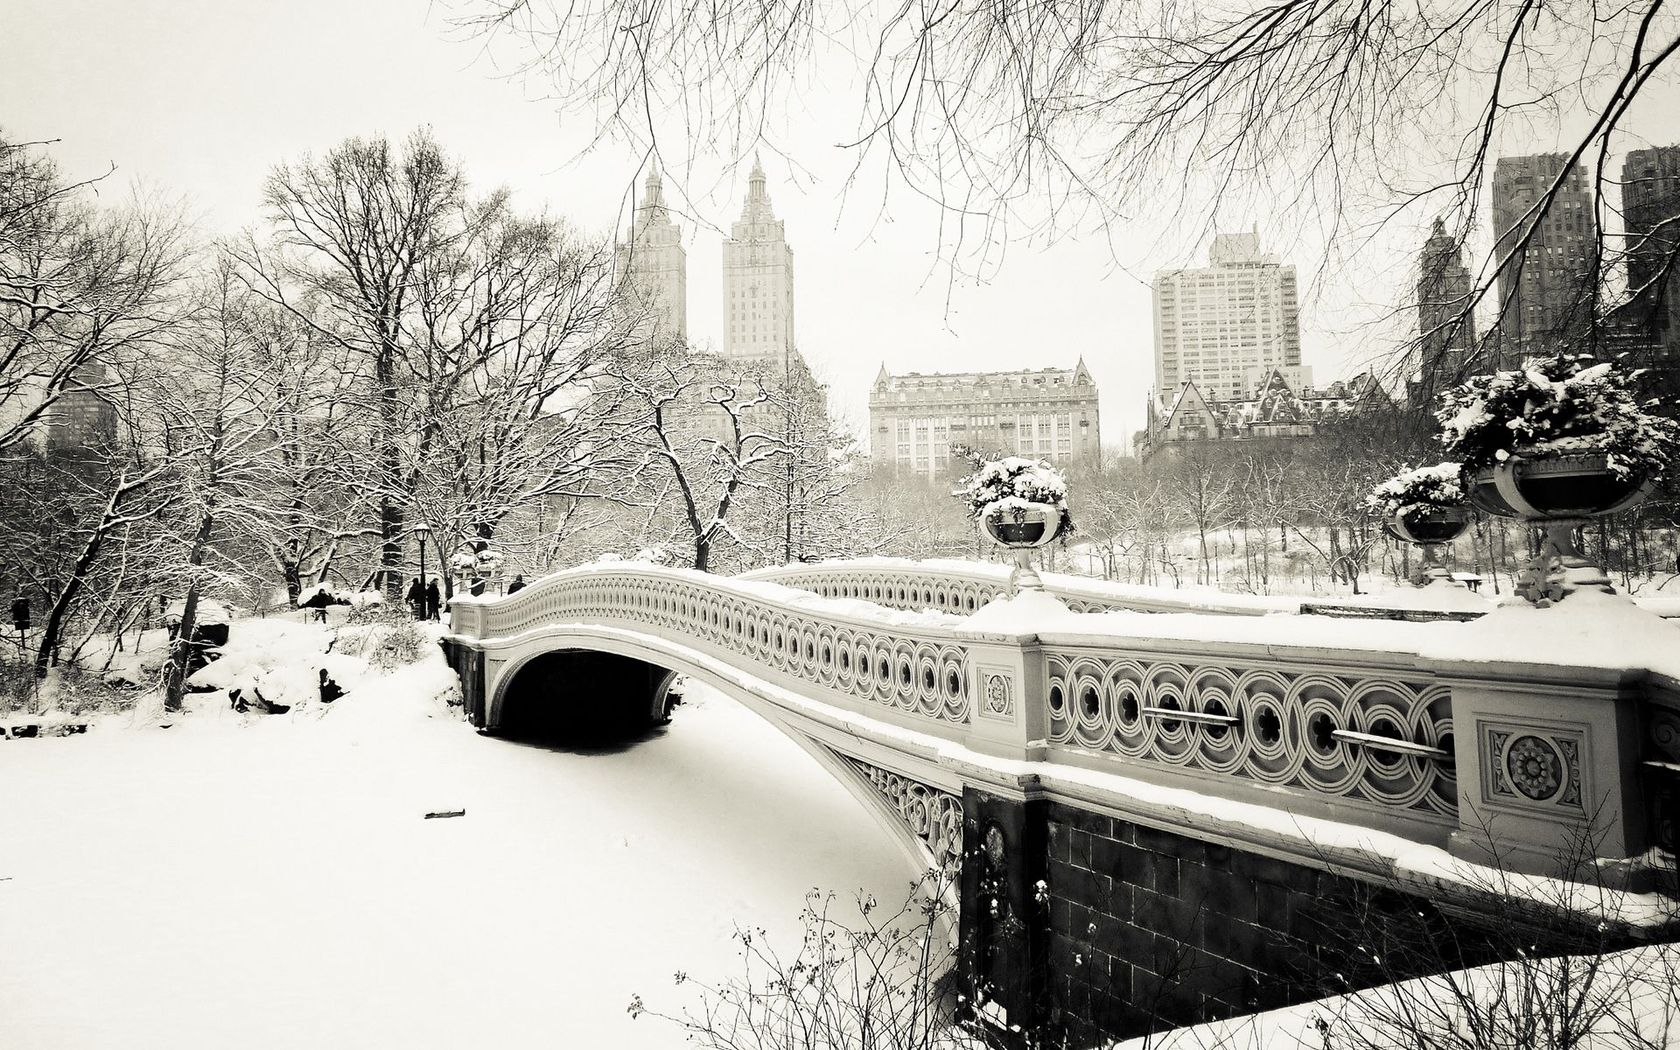 Winter in Central Park wallpaper 17895 1680x1050